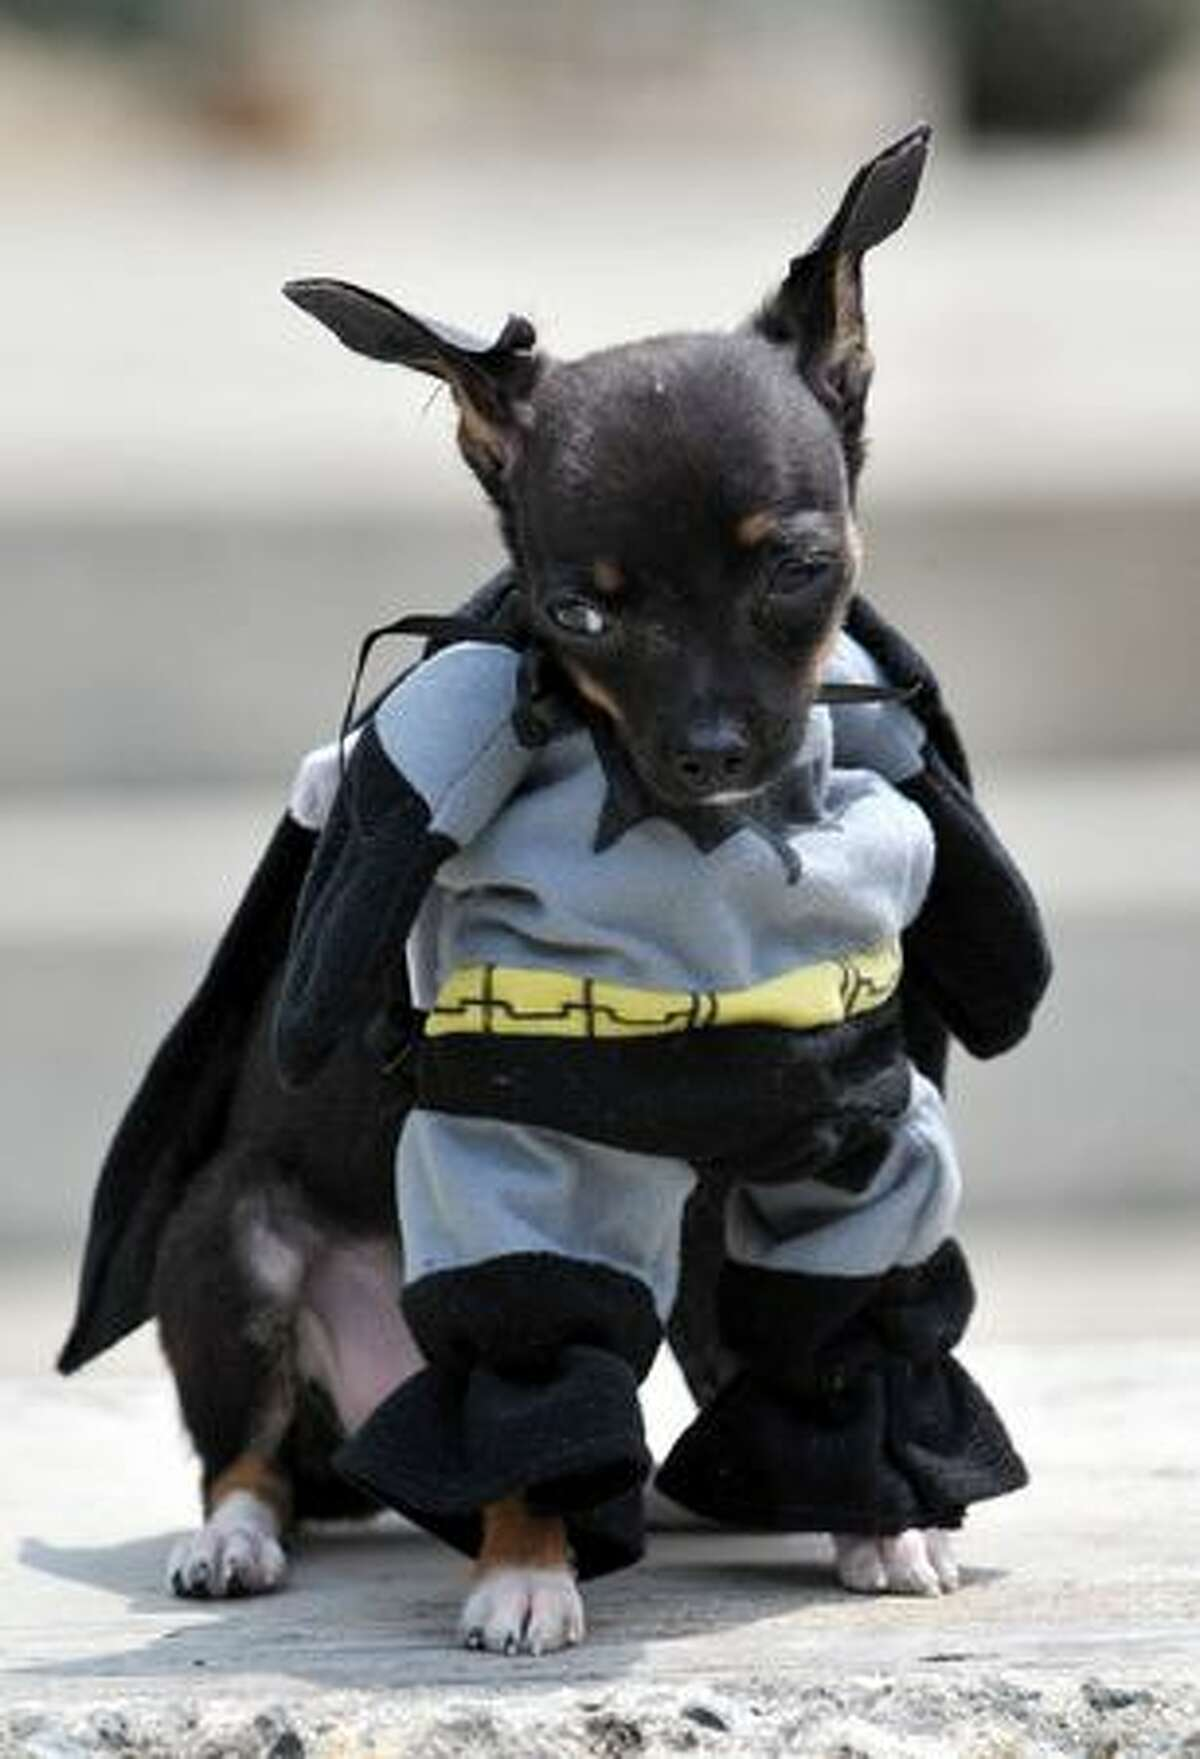 A dog dressed as Batman participates in the Family Pet festival in Cali, department of Valle del Cauca, Colombia.